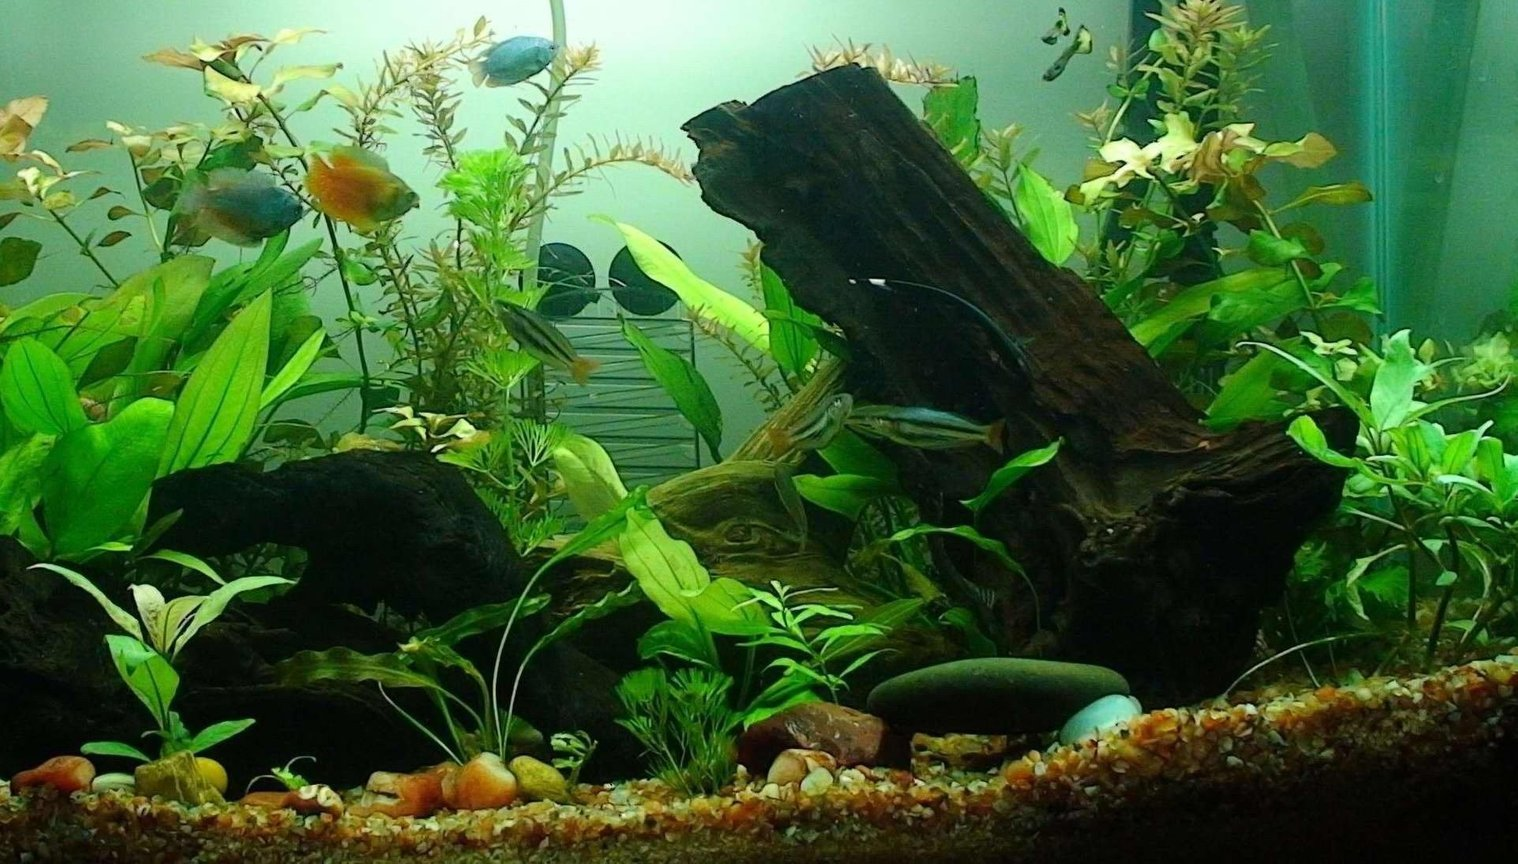 30 gallons planted tank (mostly live plants and fish) - 30 gallon Planted Aquarium Current Population: 2 Guppy 2 Common Pleco 4 Black Widow Tetra 3 Banded Rainbow 9 Neon Tetra 4 Harlequin Rasbora 2 Cherry Barb 2 Rummy Nose Tetras